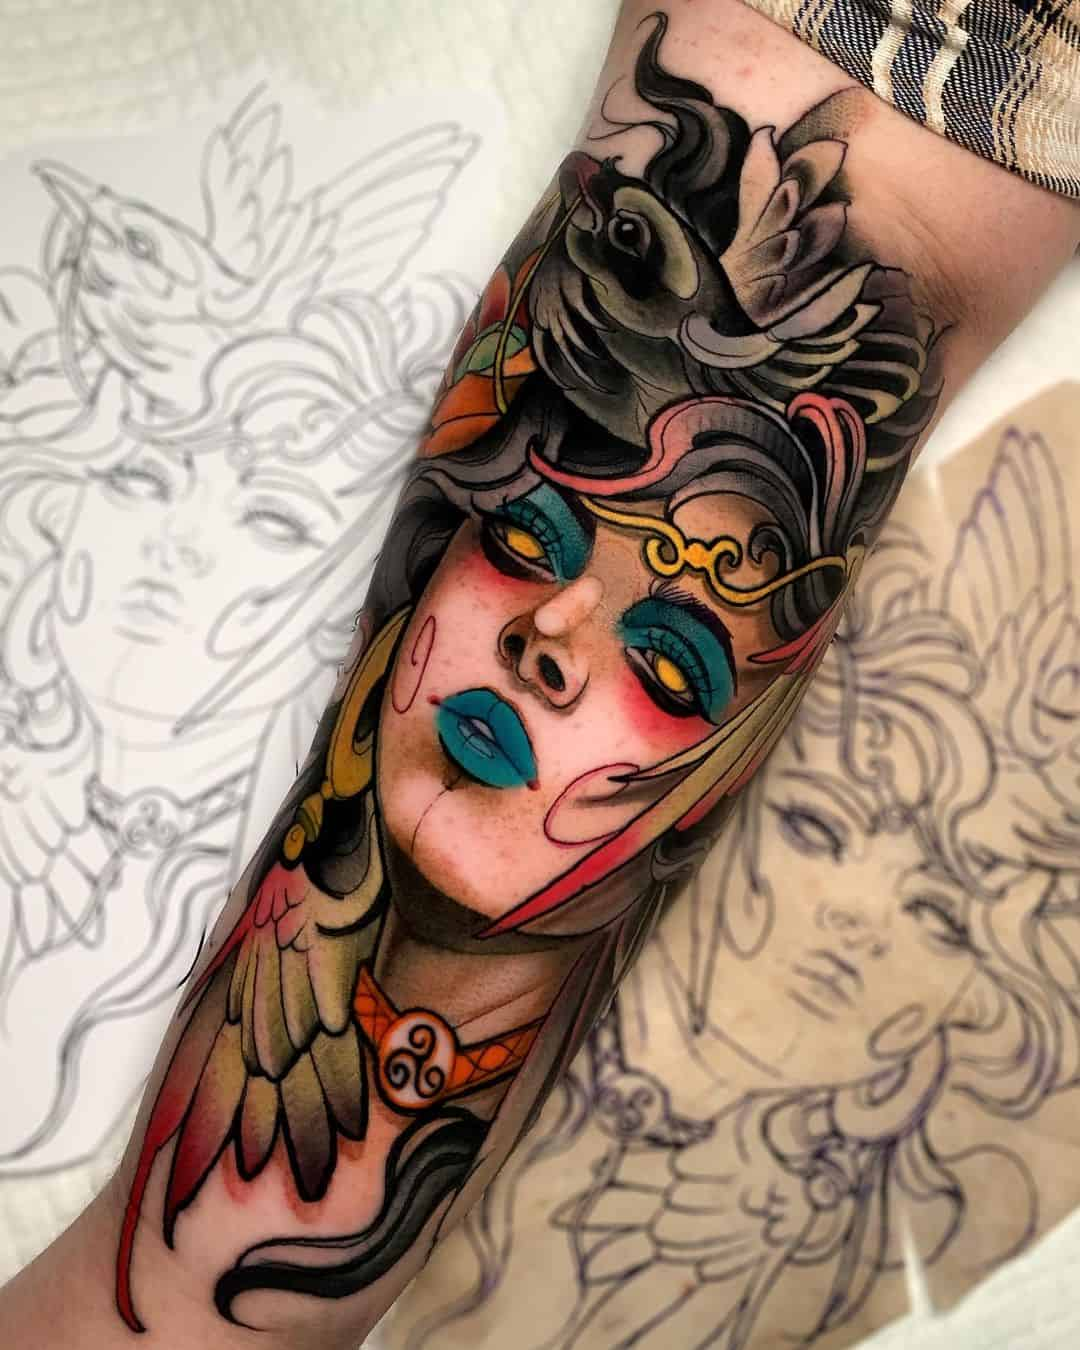 Celtic Tattoos With Mysterious Warrior Woman Ink Design